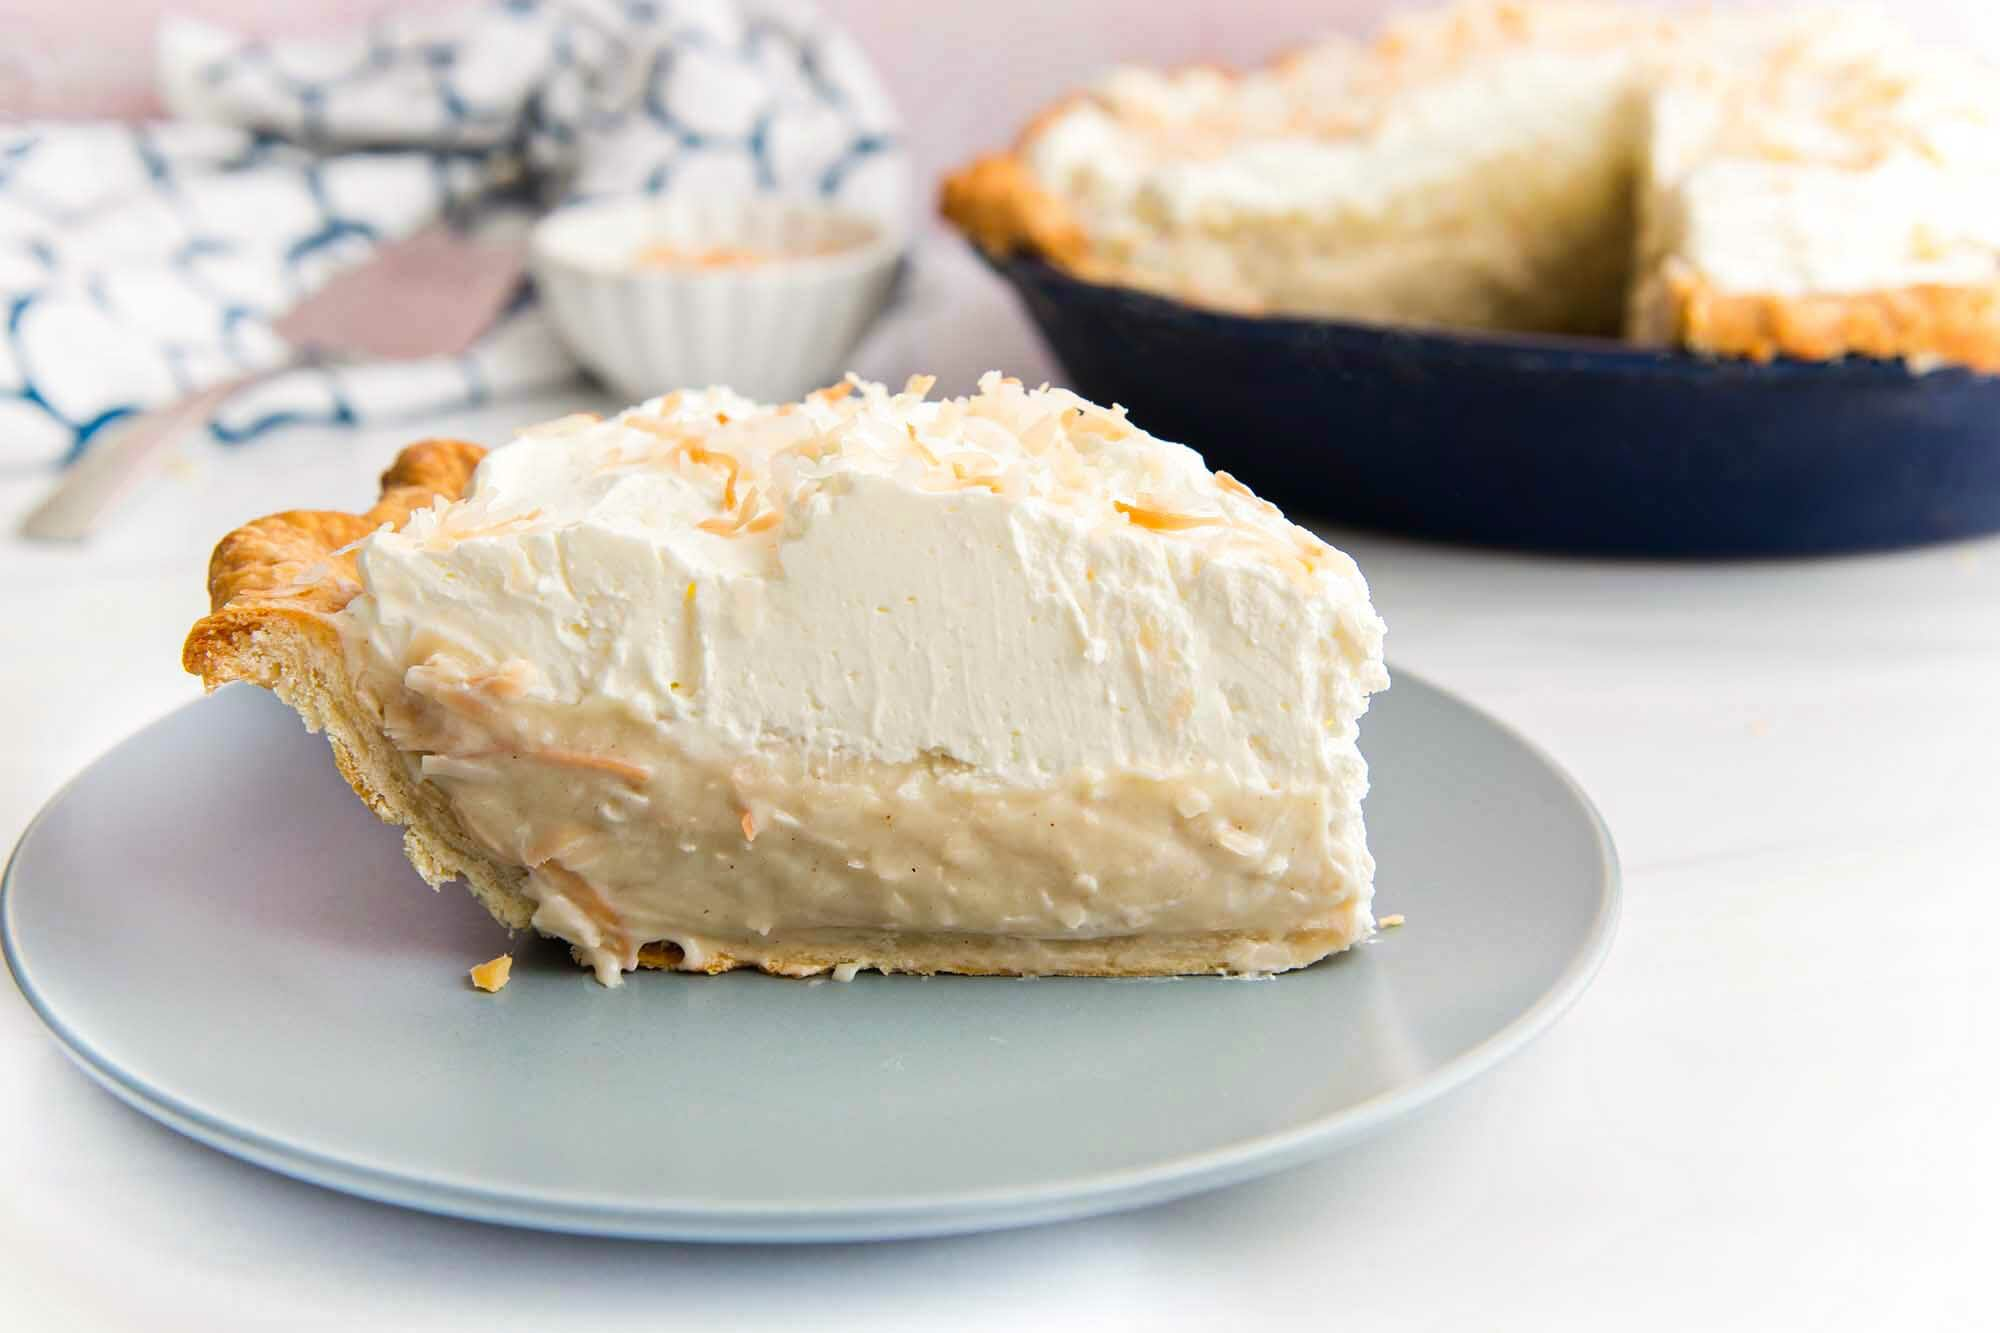 Side view of toasted coconut cream pie with a crisp crust, coconut filling and topped with a thick layer of whipping cream. The rest of the pie is visible behind the plate.